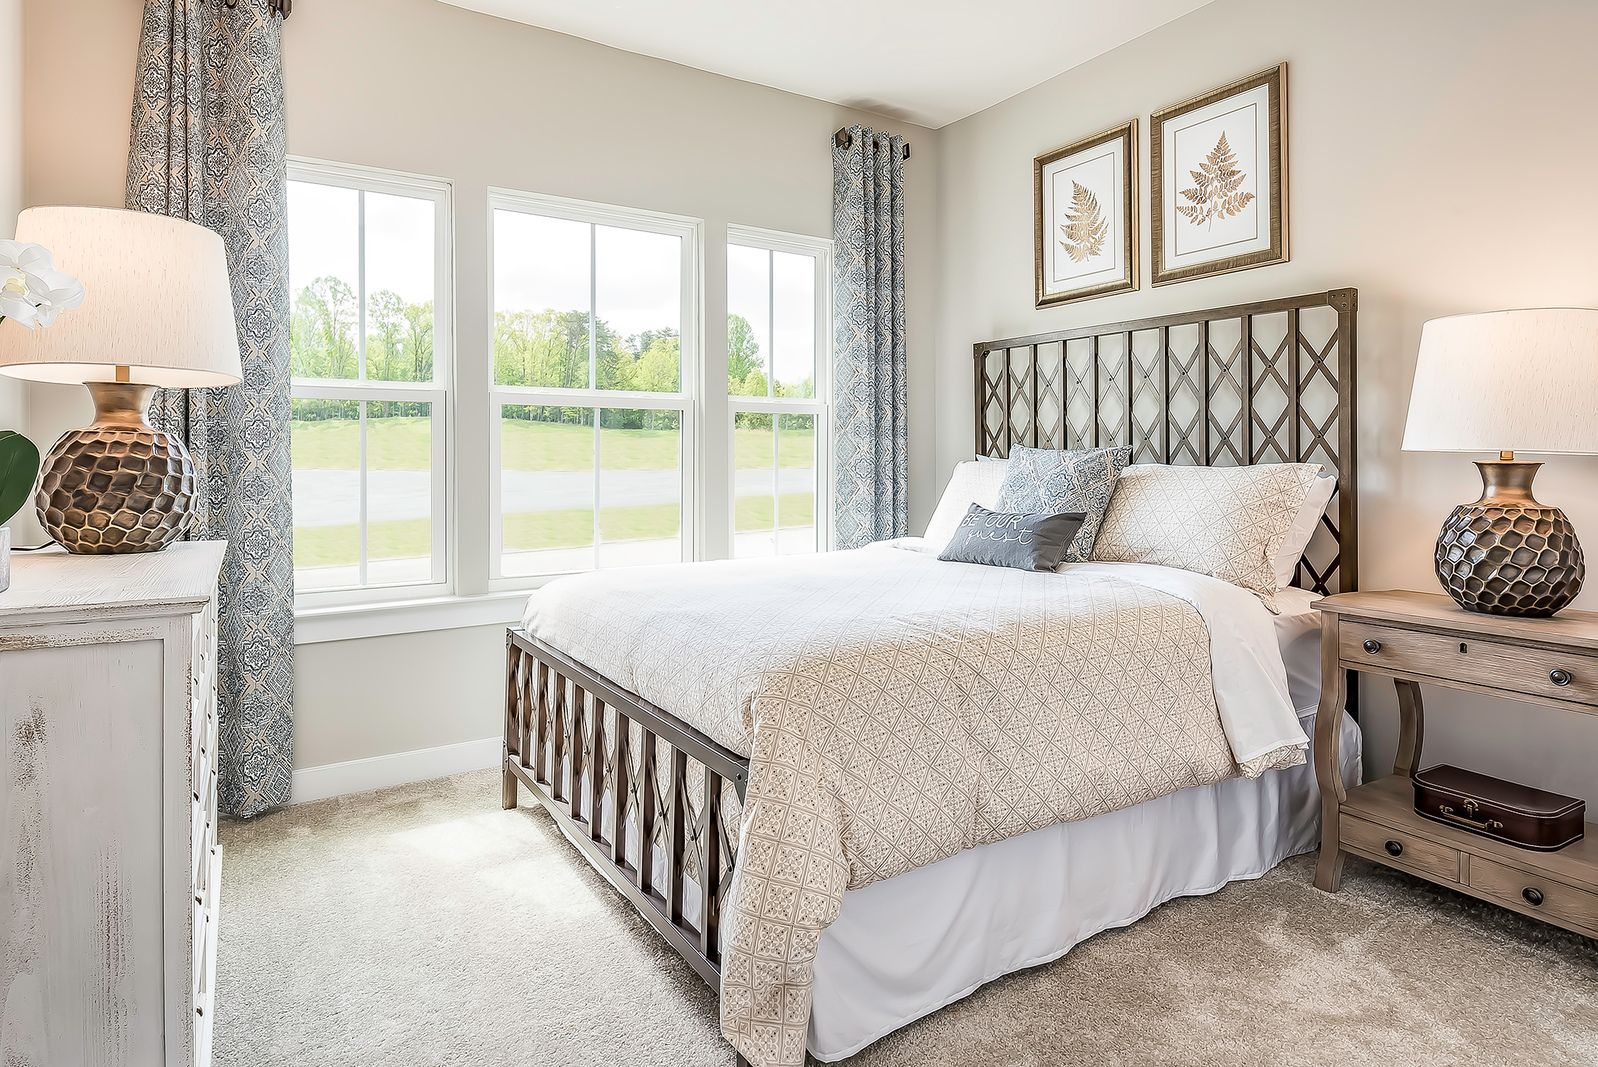 Bedroom featured in the Bramante Ranch By Ryan Homes in Washington, VA